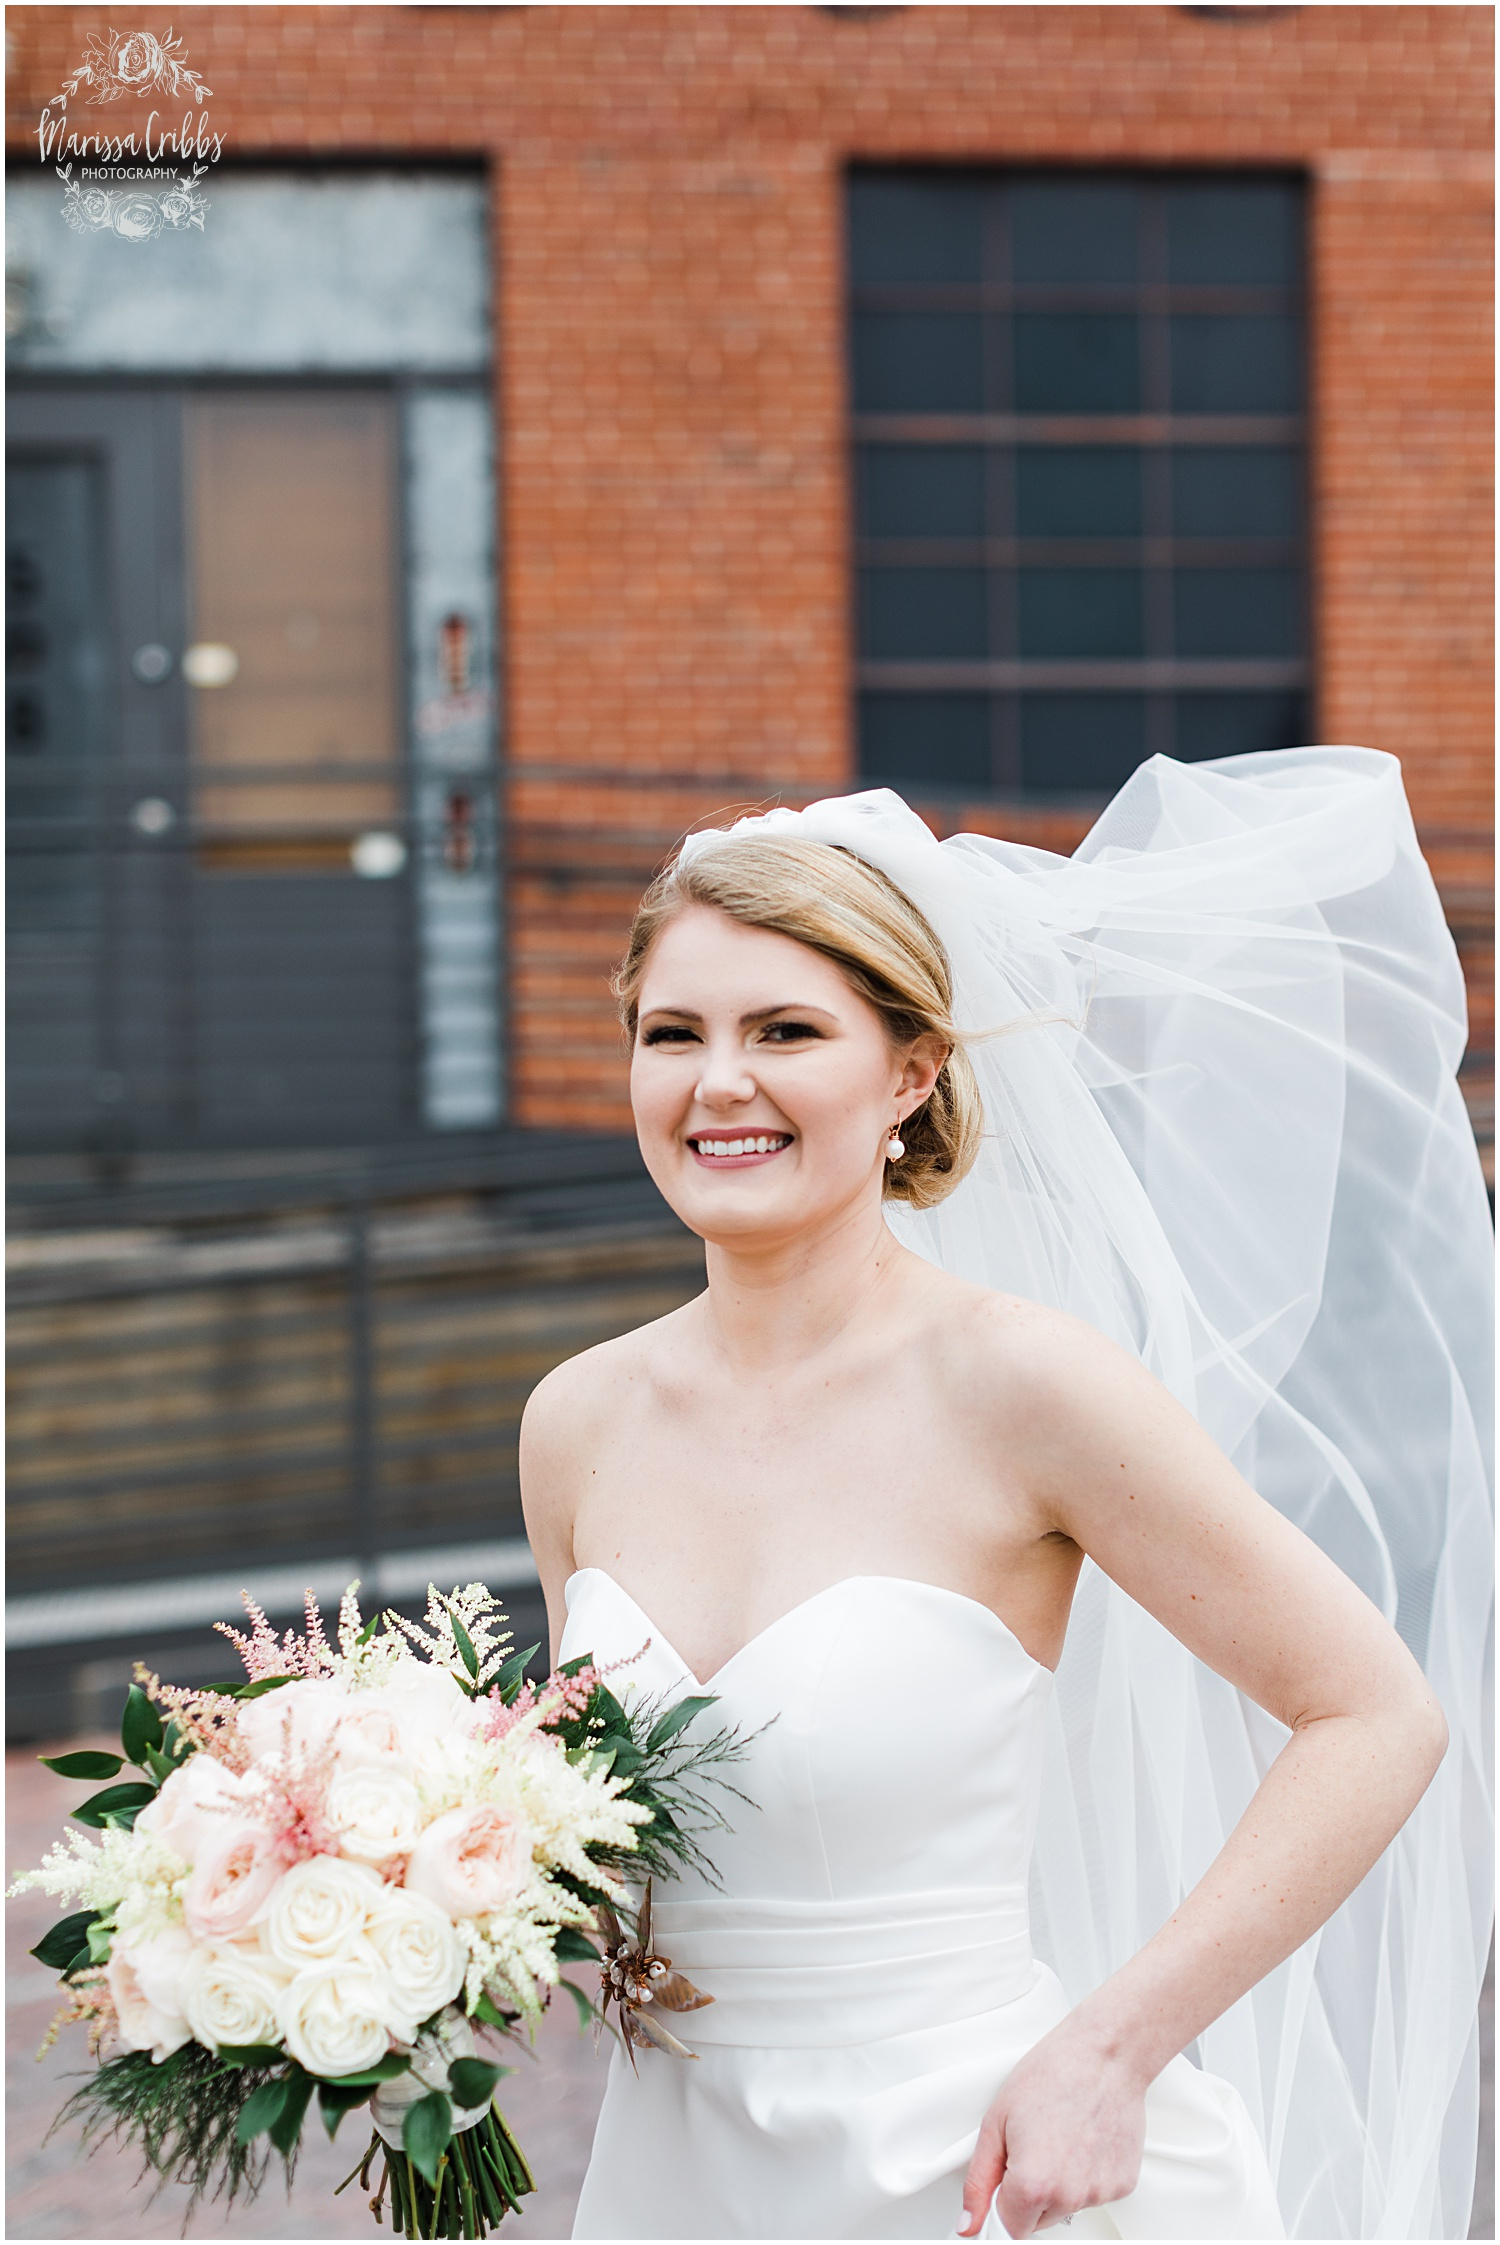 ABBY & CHARLIE WEDDING | THE HUDSON EVENT SPACE WEDDING | MARISSA CRIBBS PHOTOGRAPHY_7512.jpg